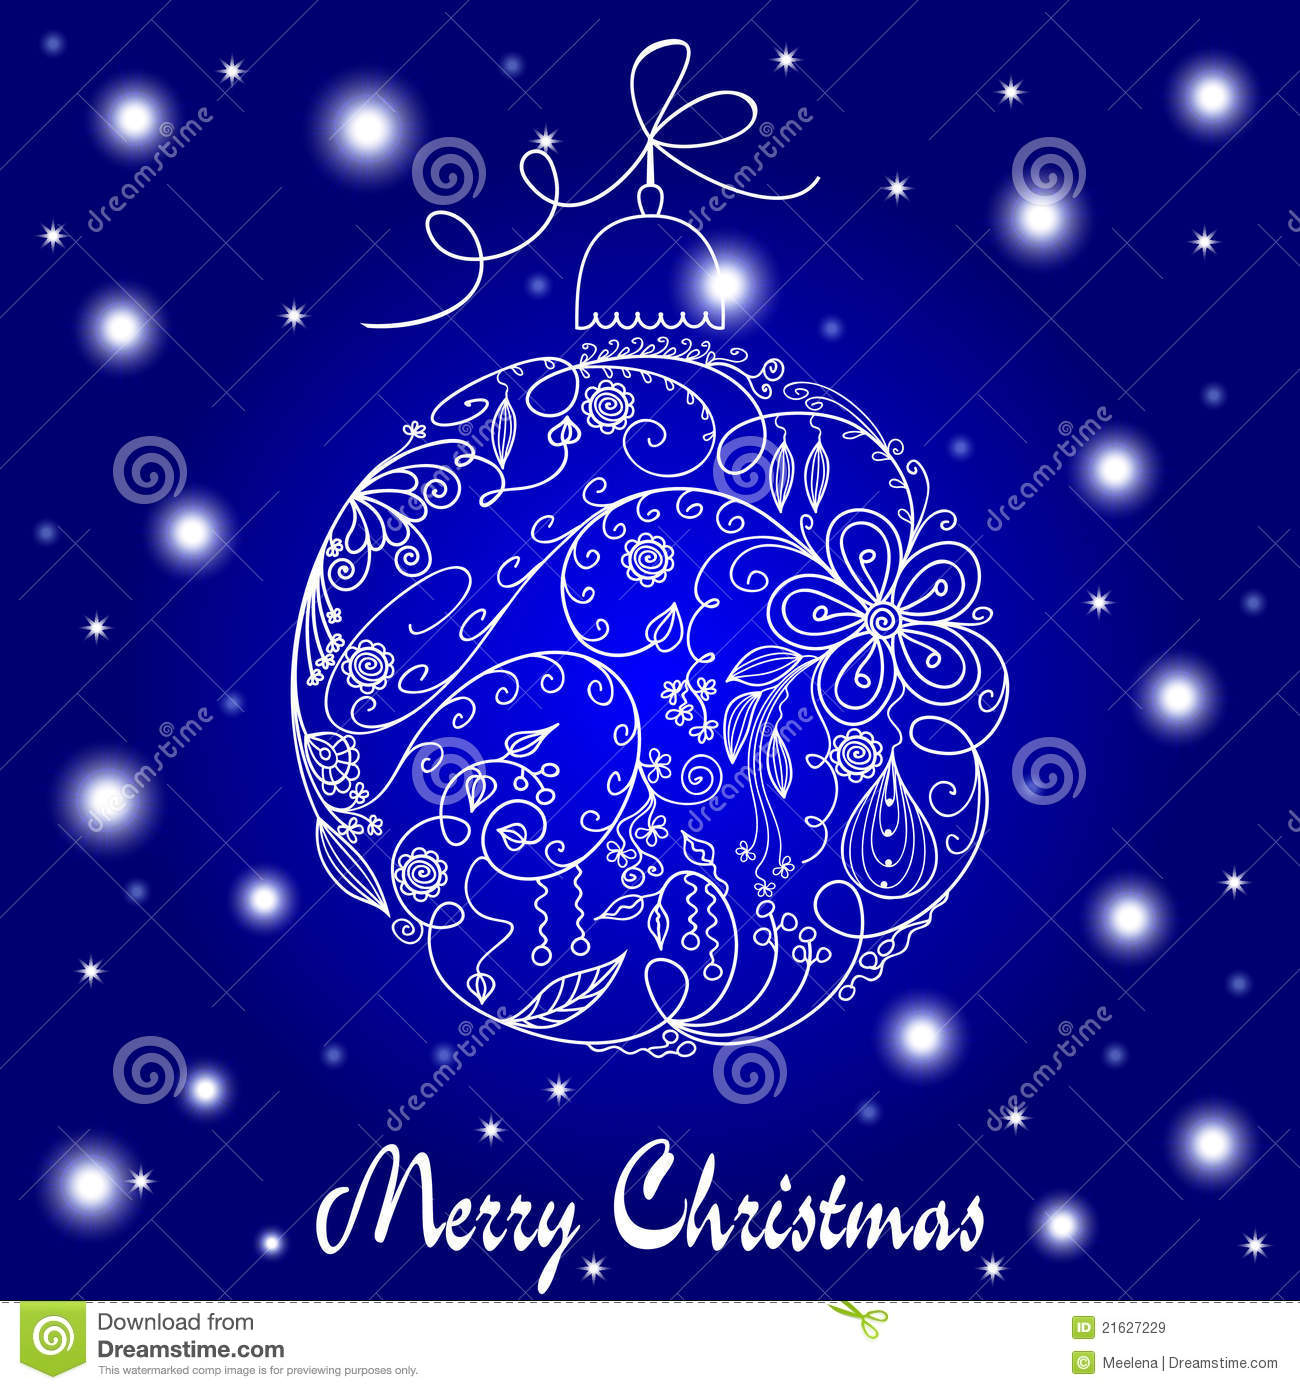 Blue And White Christmas Card Royalty Free Stock Images - Image ...